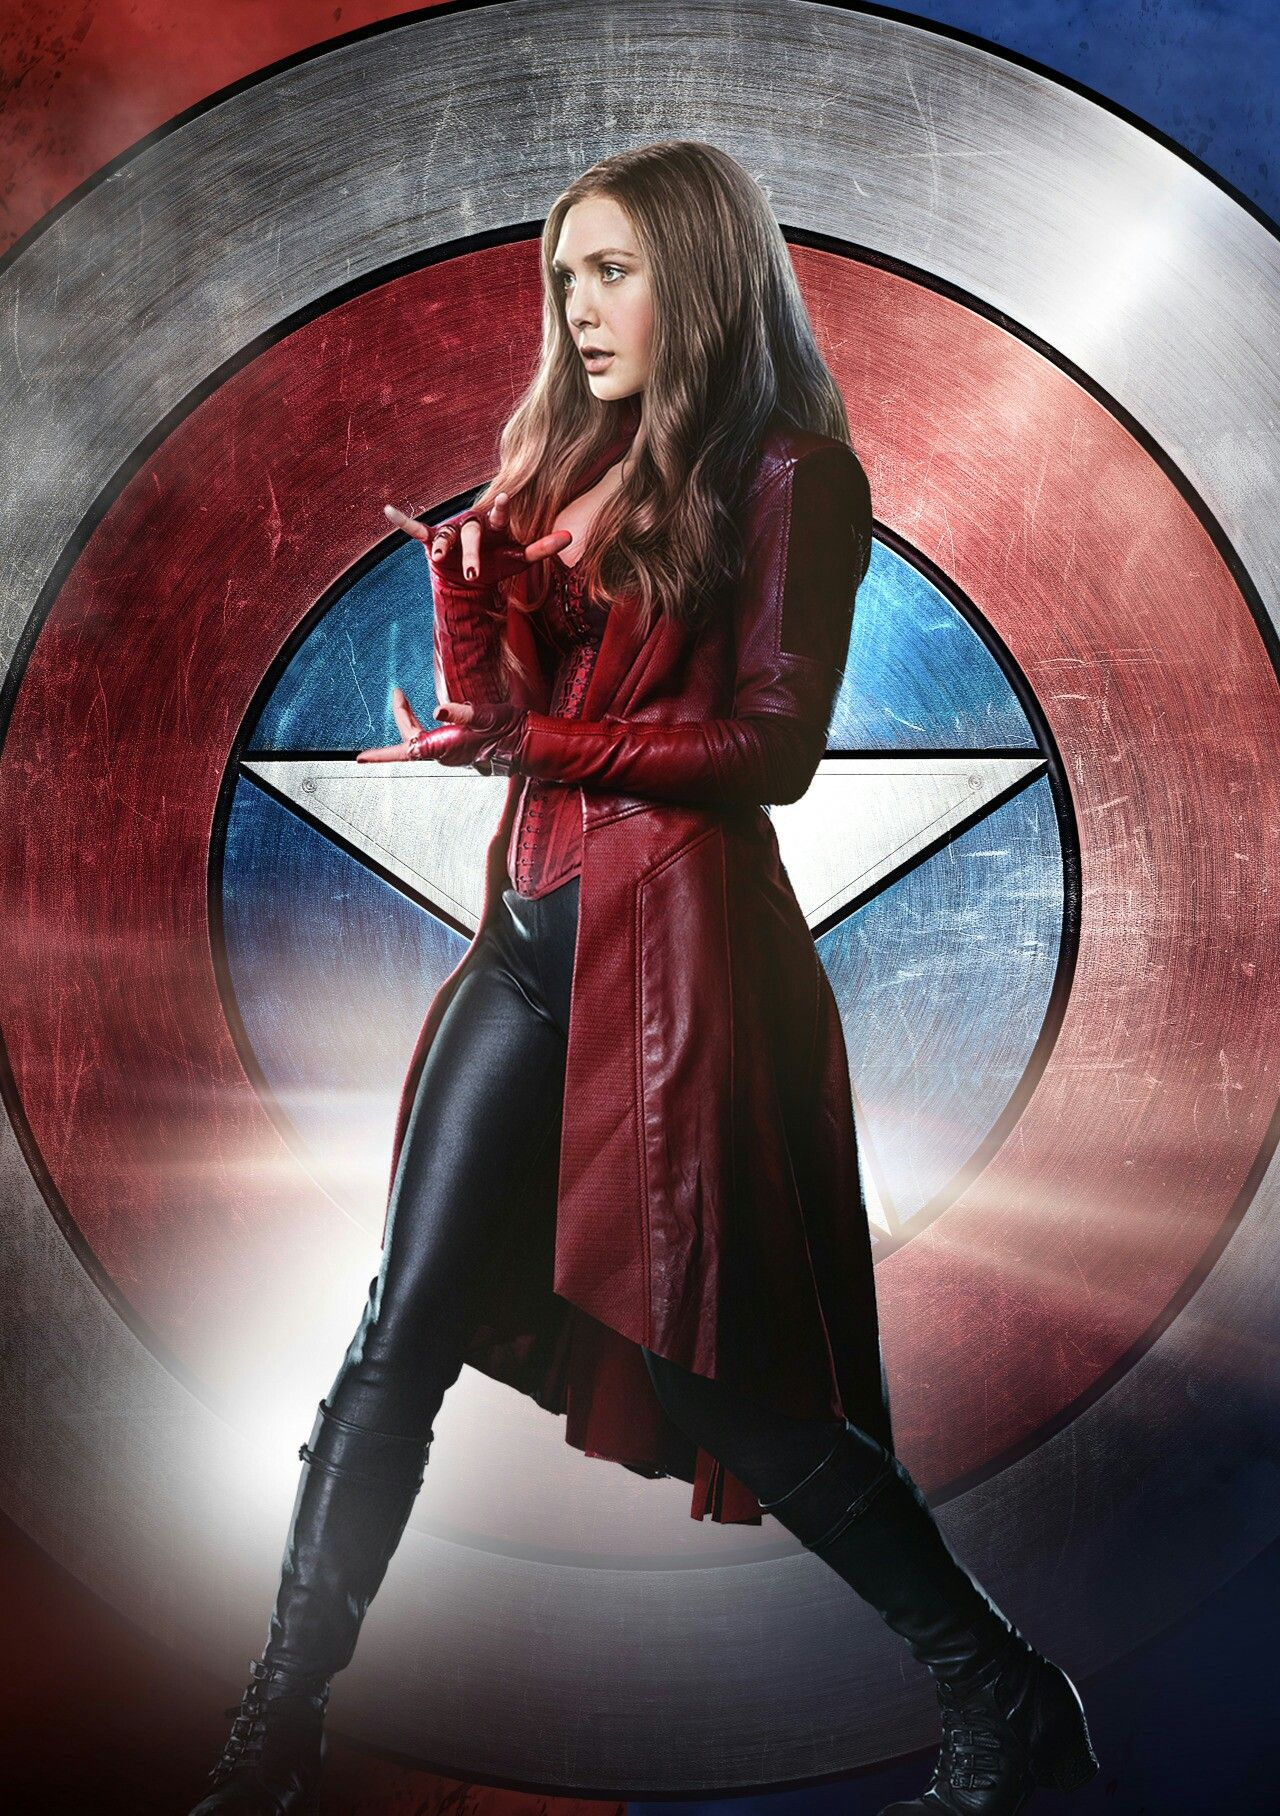 Scarlet Witch Thing For Captain America Civil War Looks Like A Cool Promo Bit Scarlet Witch Marvel Elizabeth Olsen Scarlet Witch Scarlet Witch